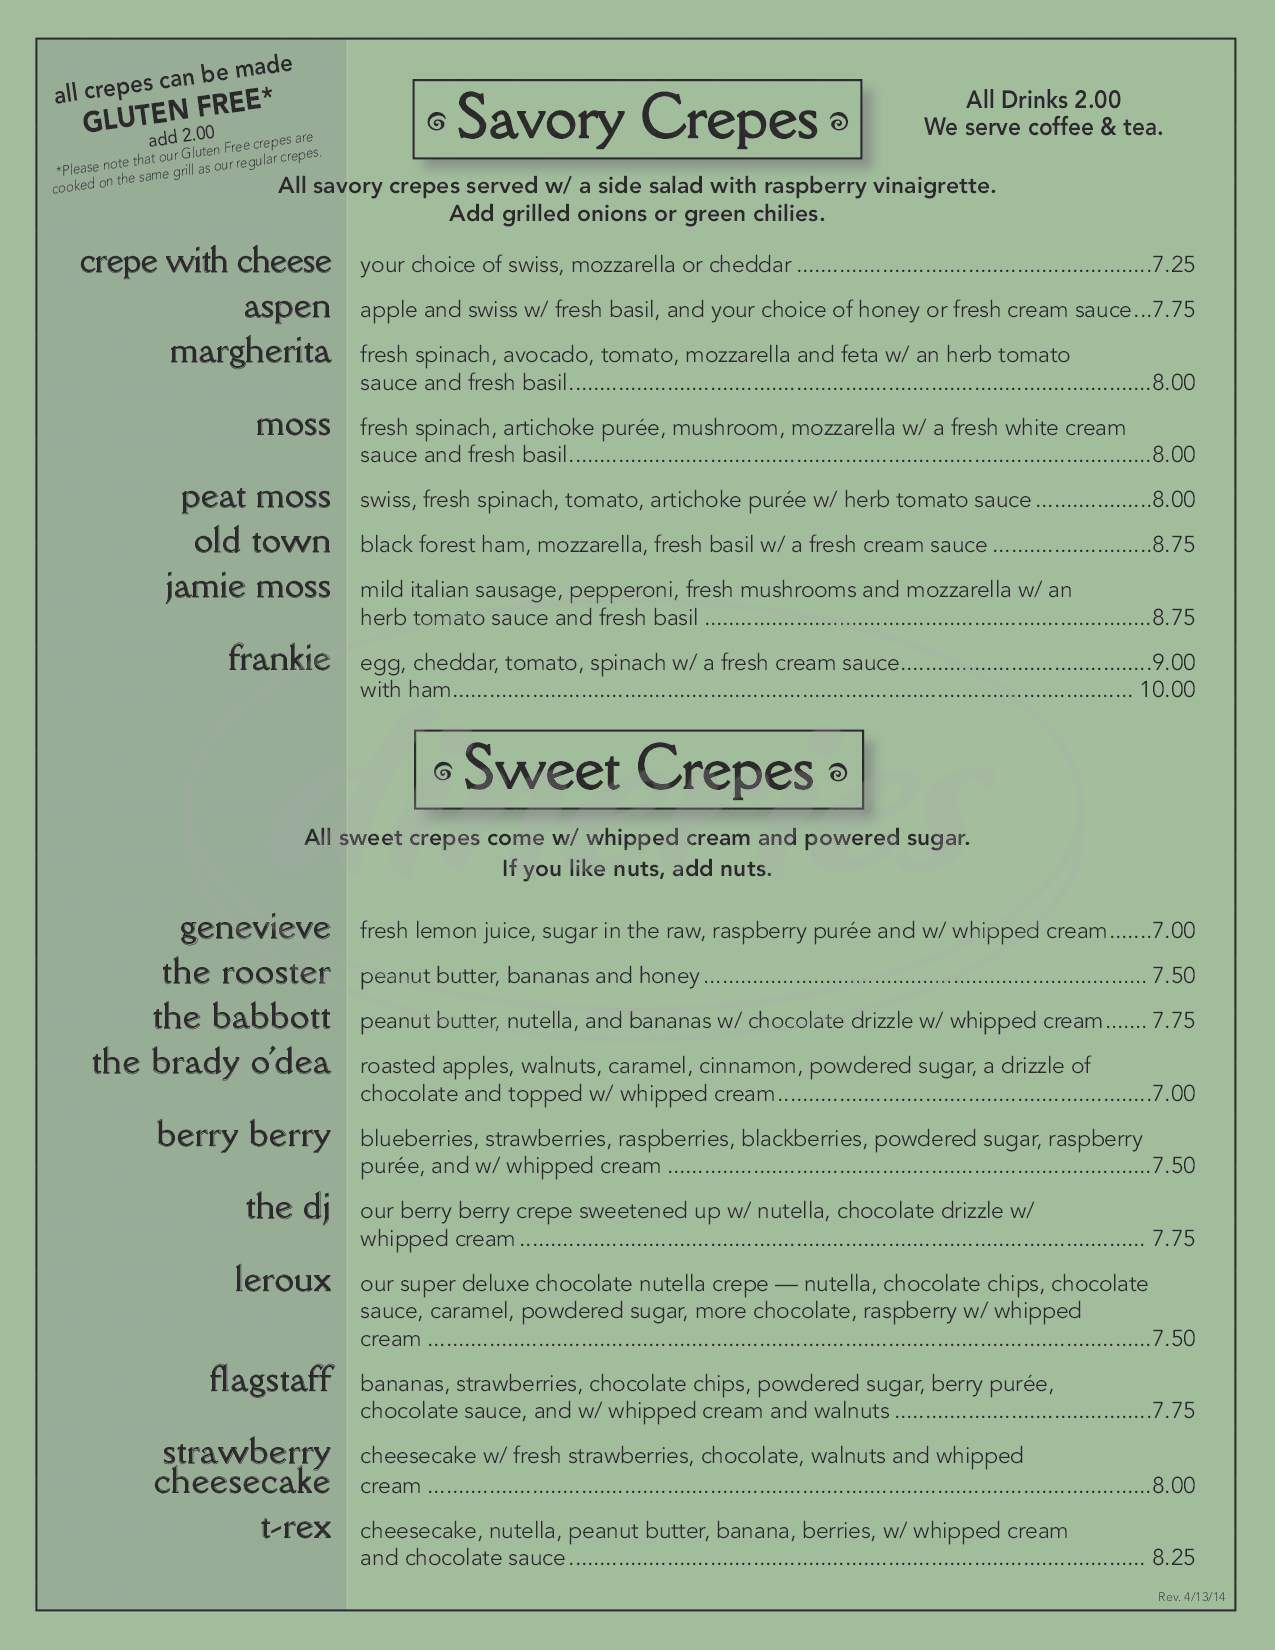 menu for Old Towne Creperie